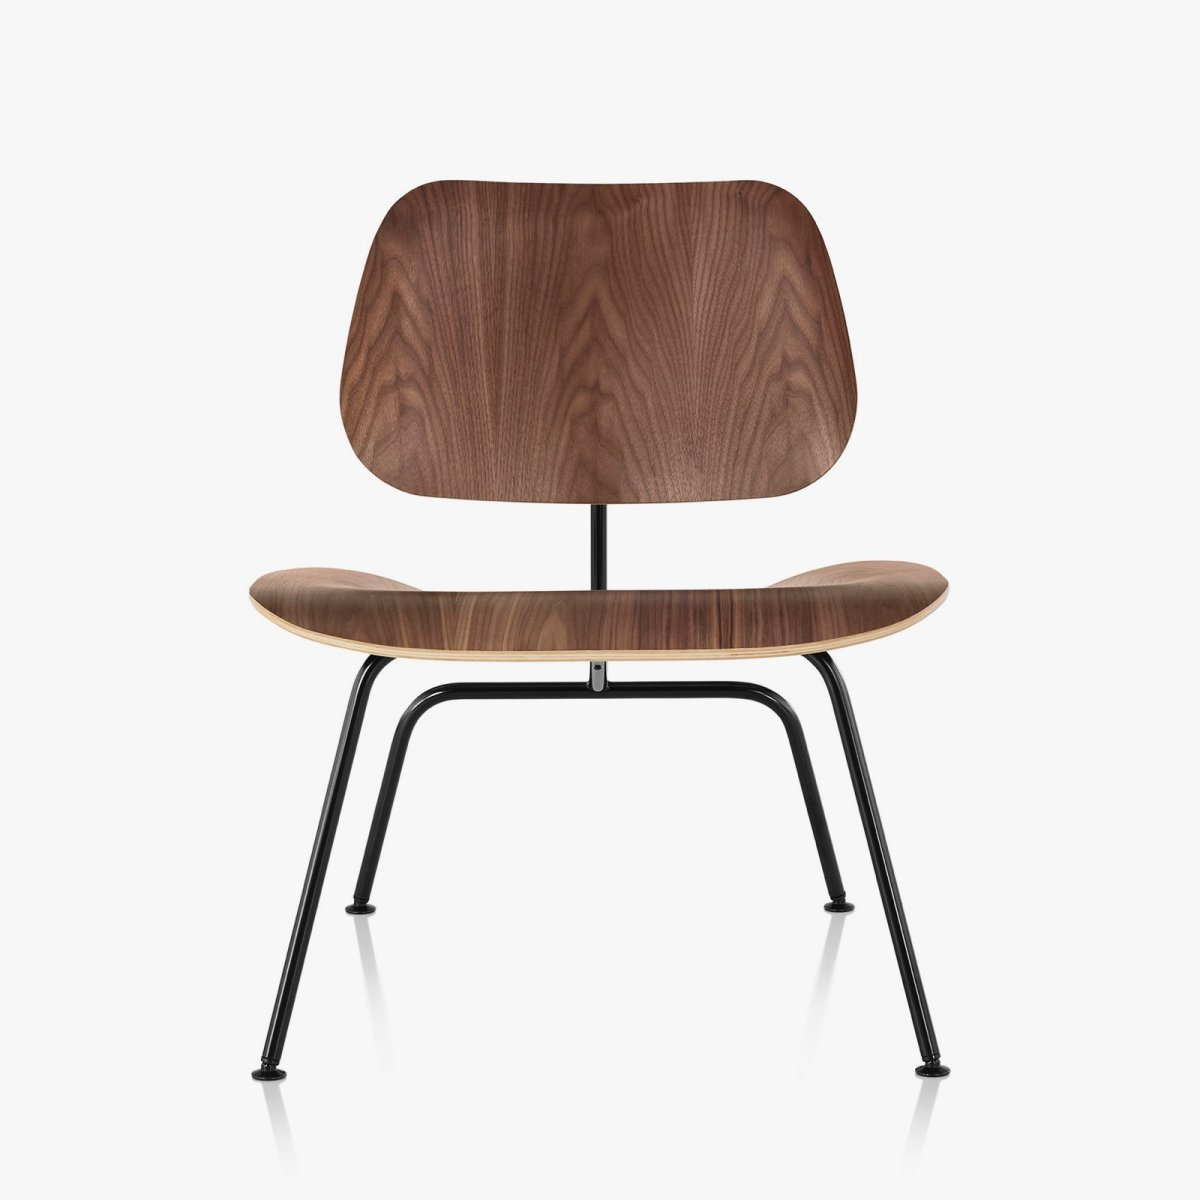 eames molded plywood lounge chair with metal base by charles ray eames for herman miller up. Black Bedroom Furniture Sets. Home Design Ideas